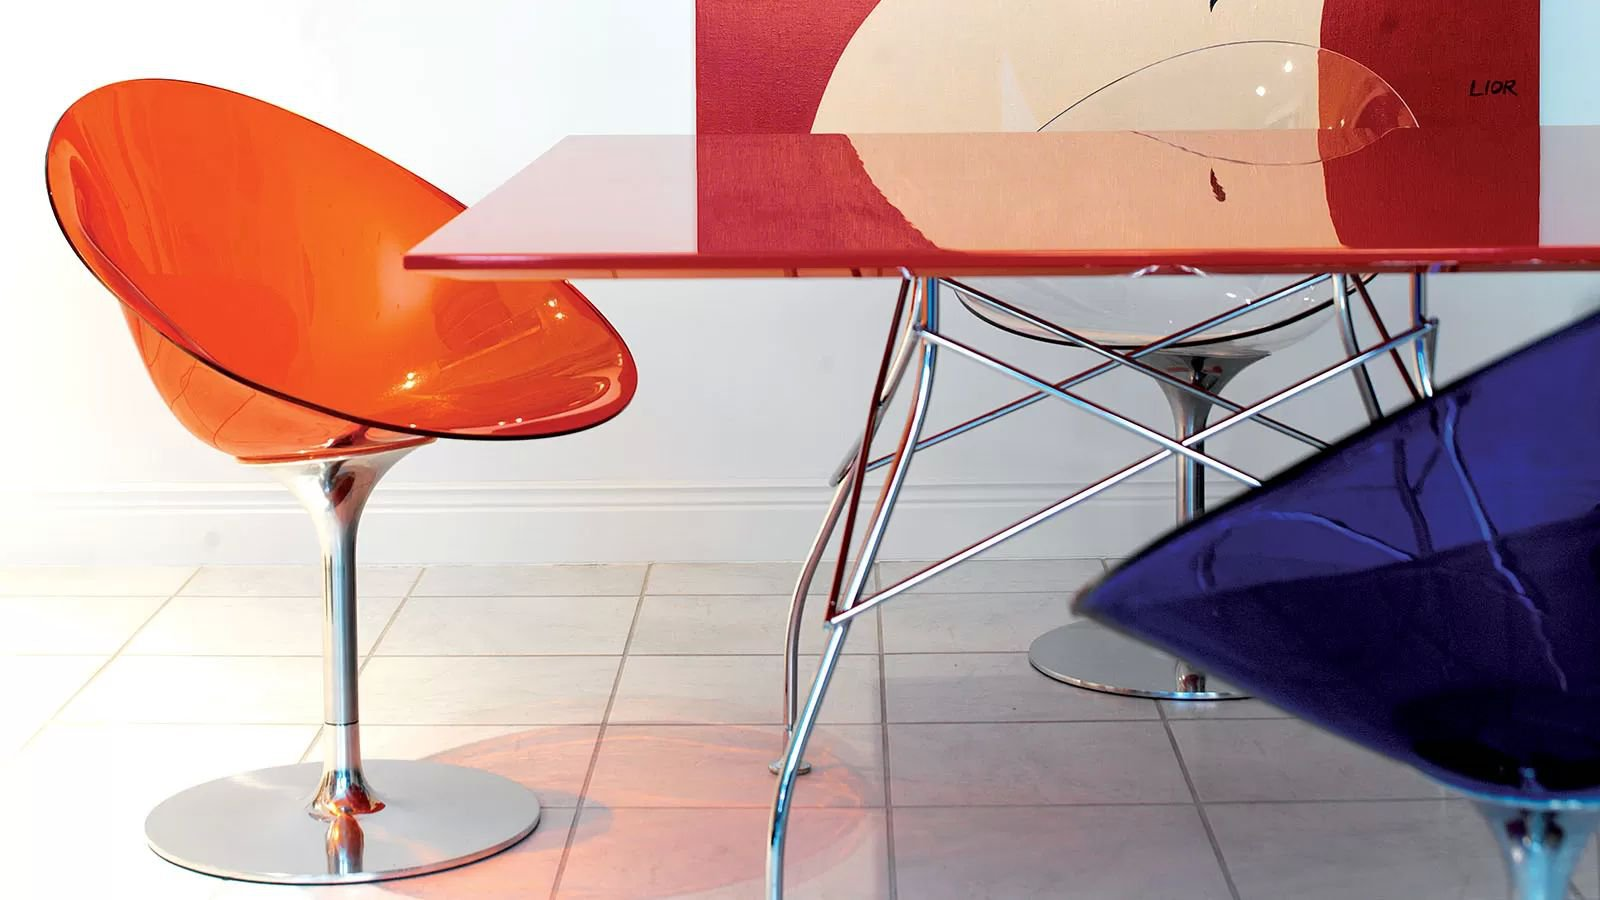 Ero |S| Swivel chair from Kartell, designed by Philippe Starck